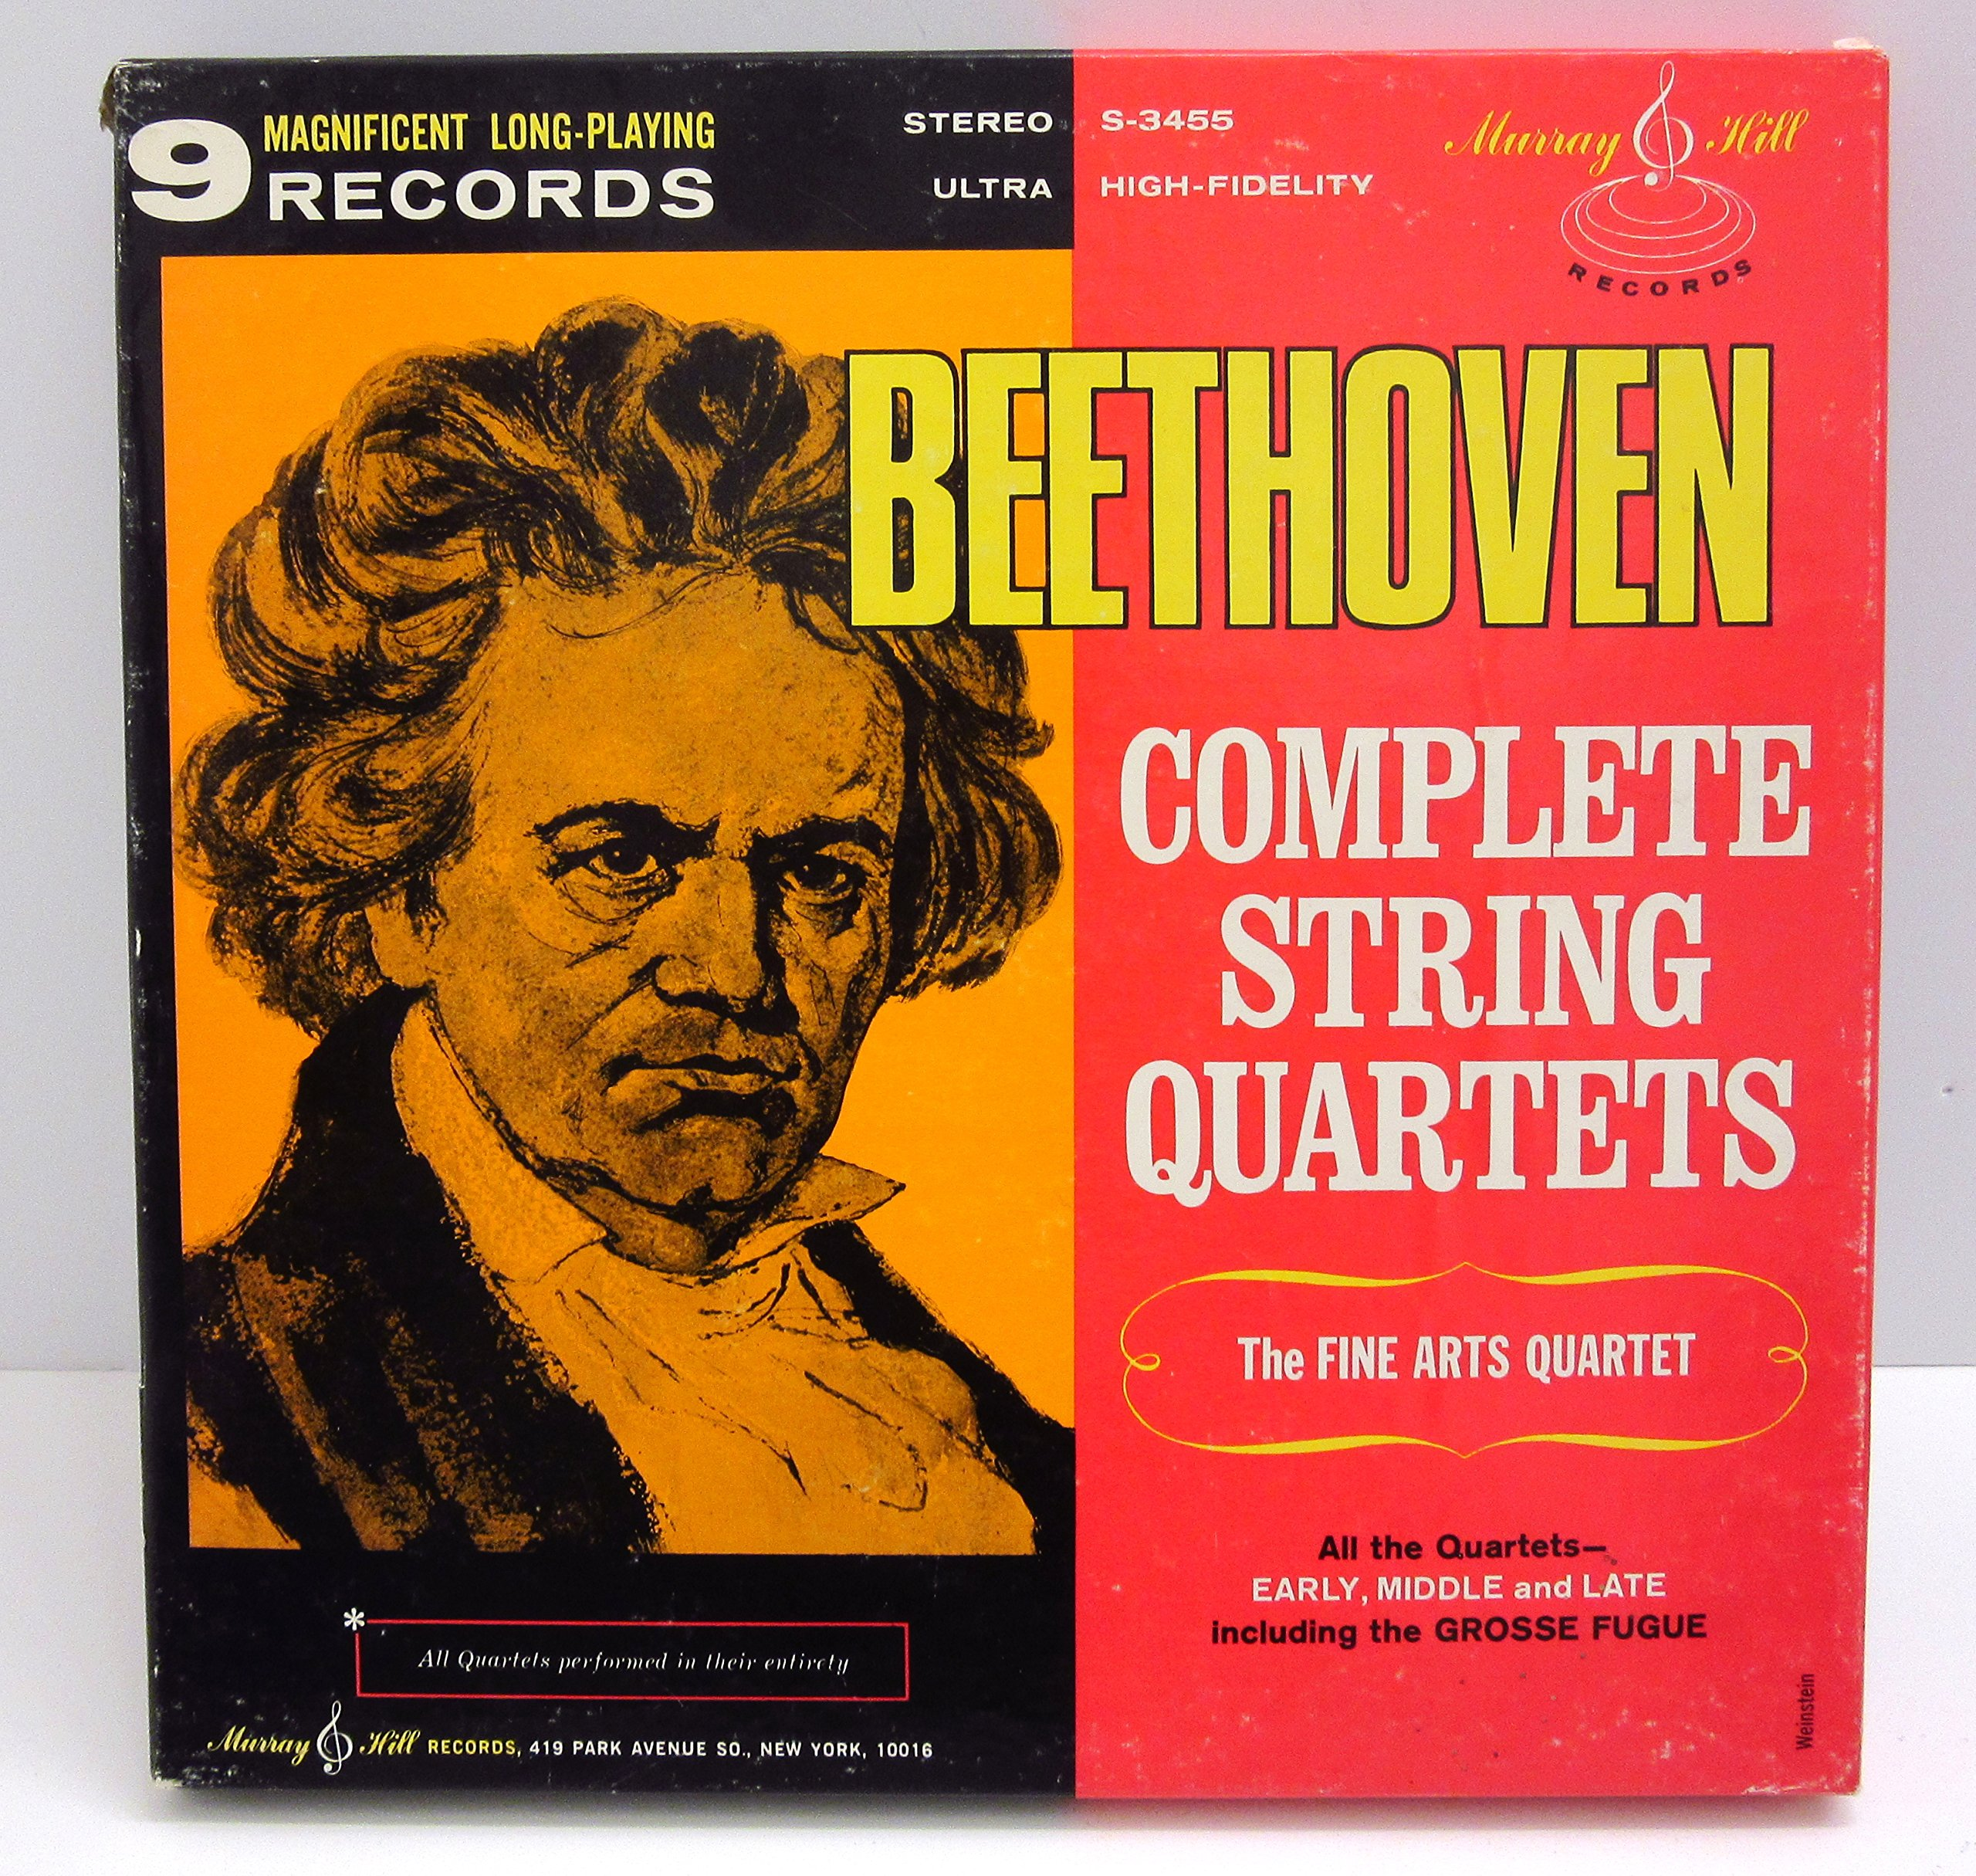 Beethoven: Complete String Quartets including The Grosse Fugue /The Fine Arts Quartet by Murray Hill Stereo S-3455